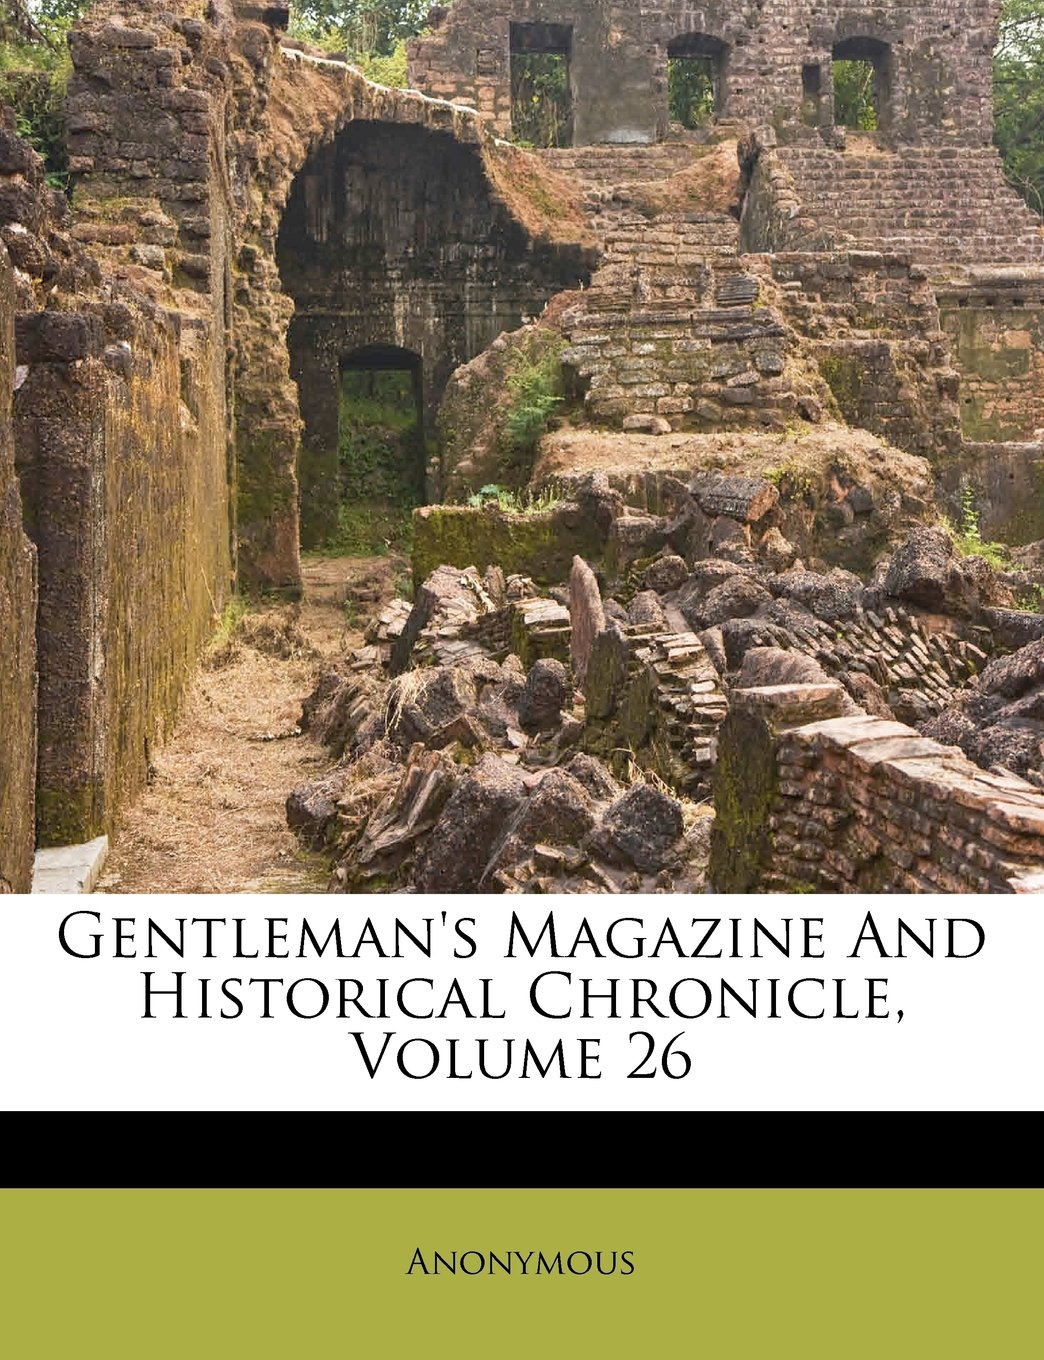 Gentleman's Magazine And Historical Chronicle, Volume 26 PDF